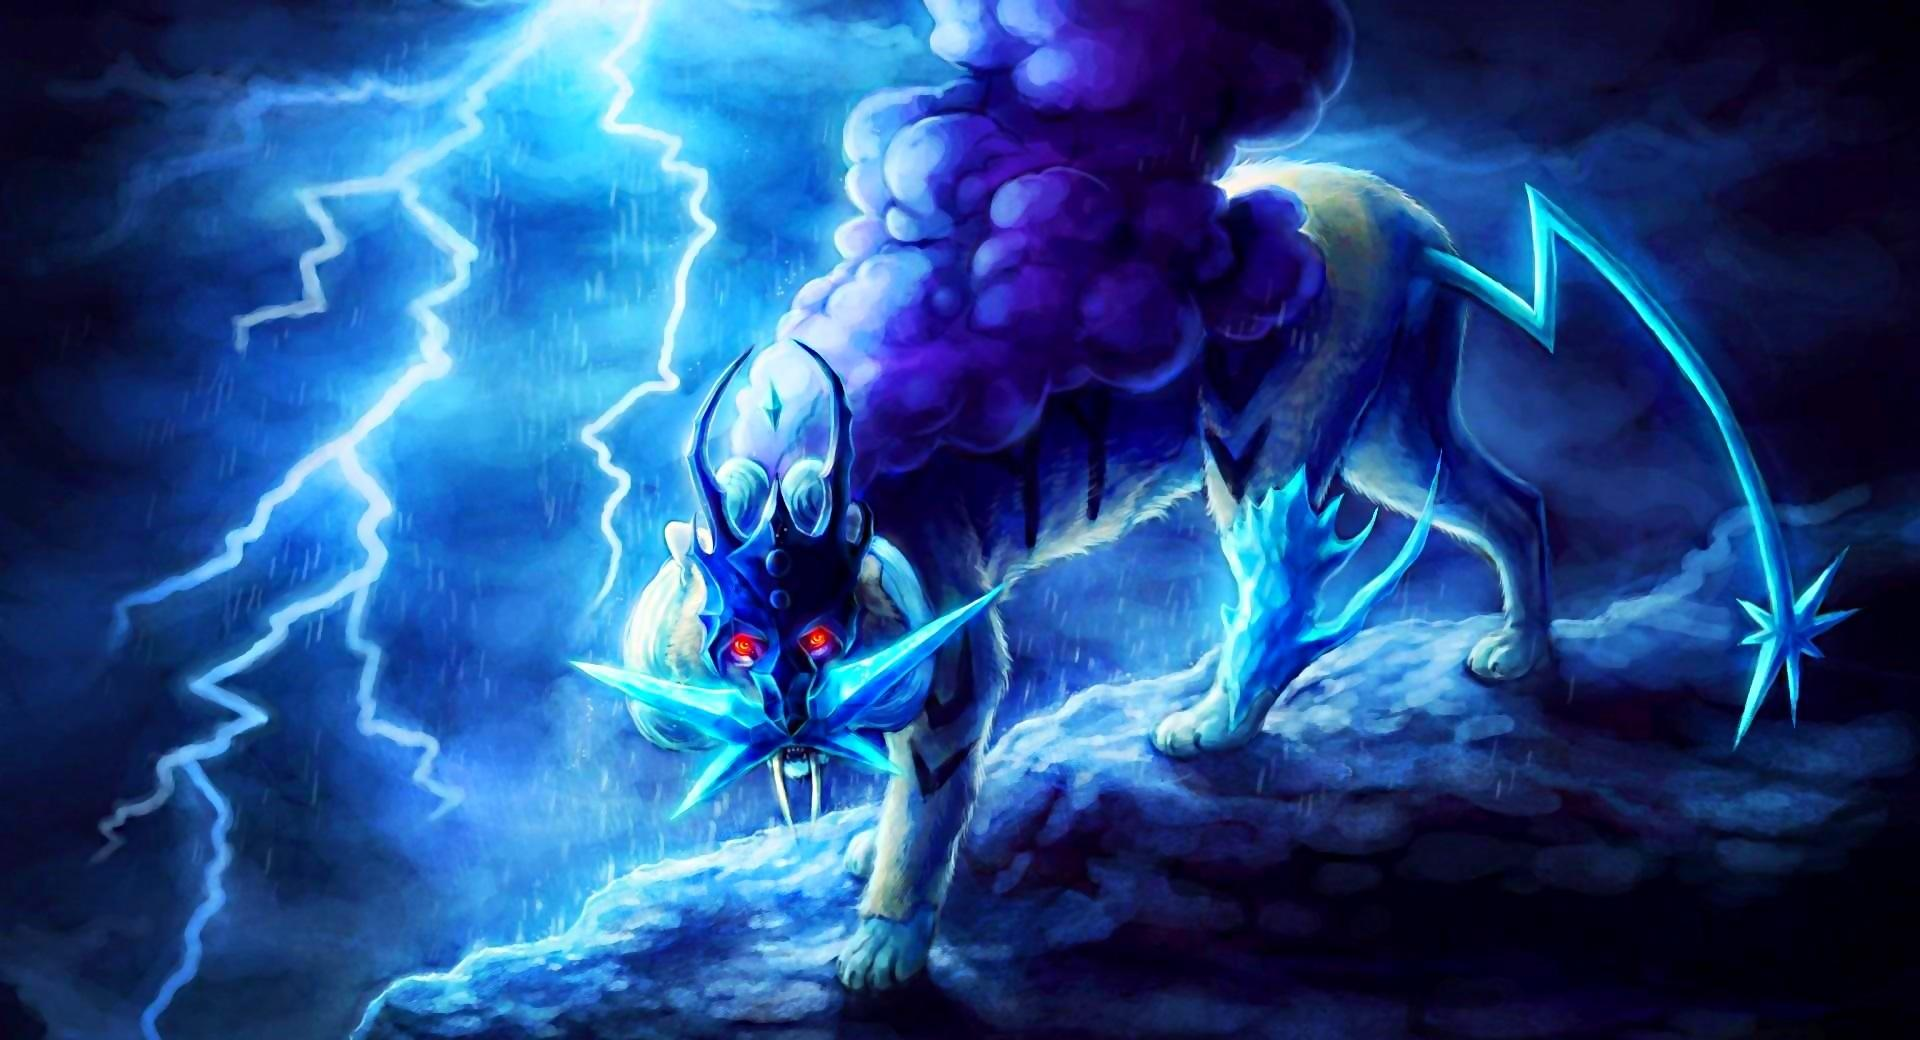 Pokemon Suicune wallpapers HD quality